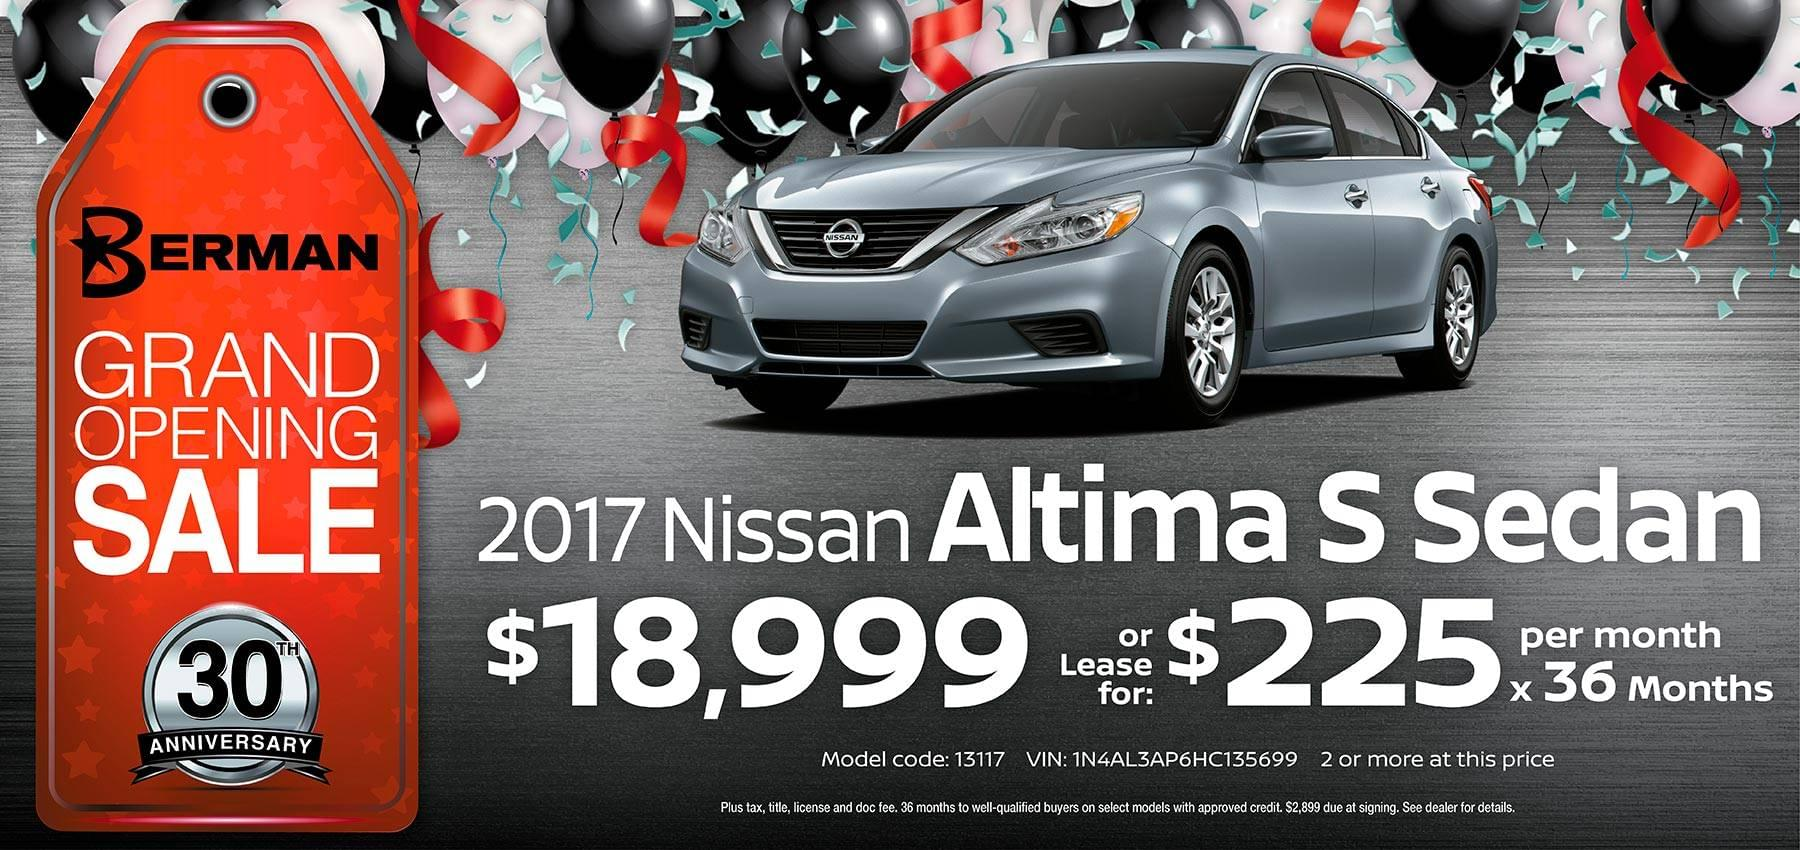 2017 Nissan Altima Berman Nissan of Chicago March Grand Opening Sale